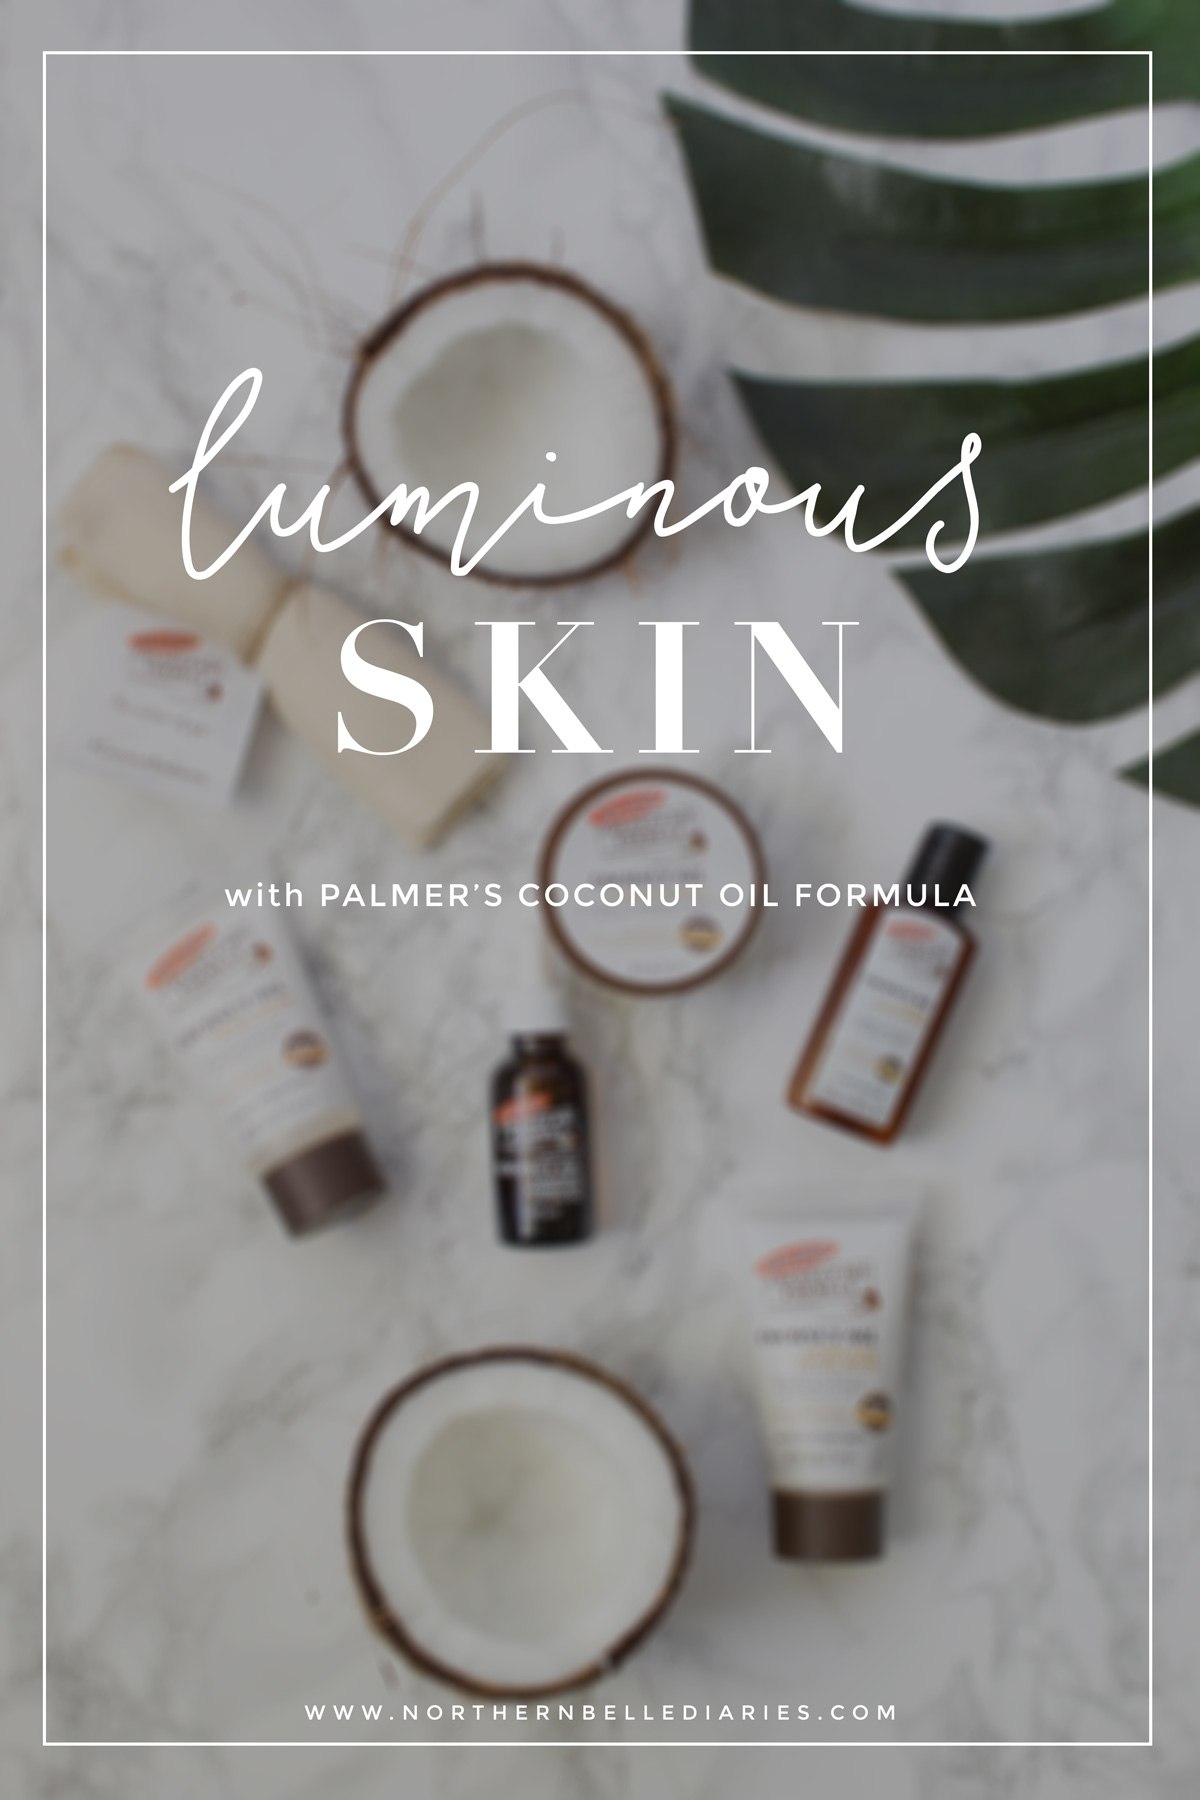 Luminous and Radiant Skin by @Palmers Coconut Oil Formula #CoconutRadiance #ad #review #greenbeauty #beauty #naturalskincare #natural #skincare #coconut #coconutoil #makeupremover